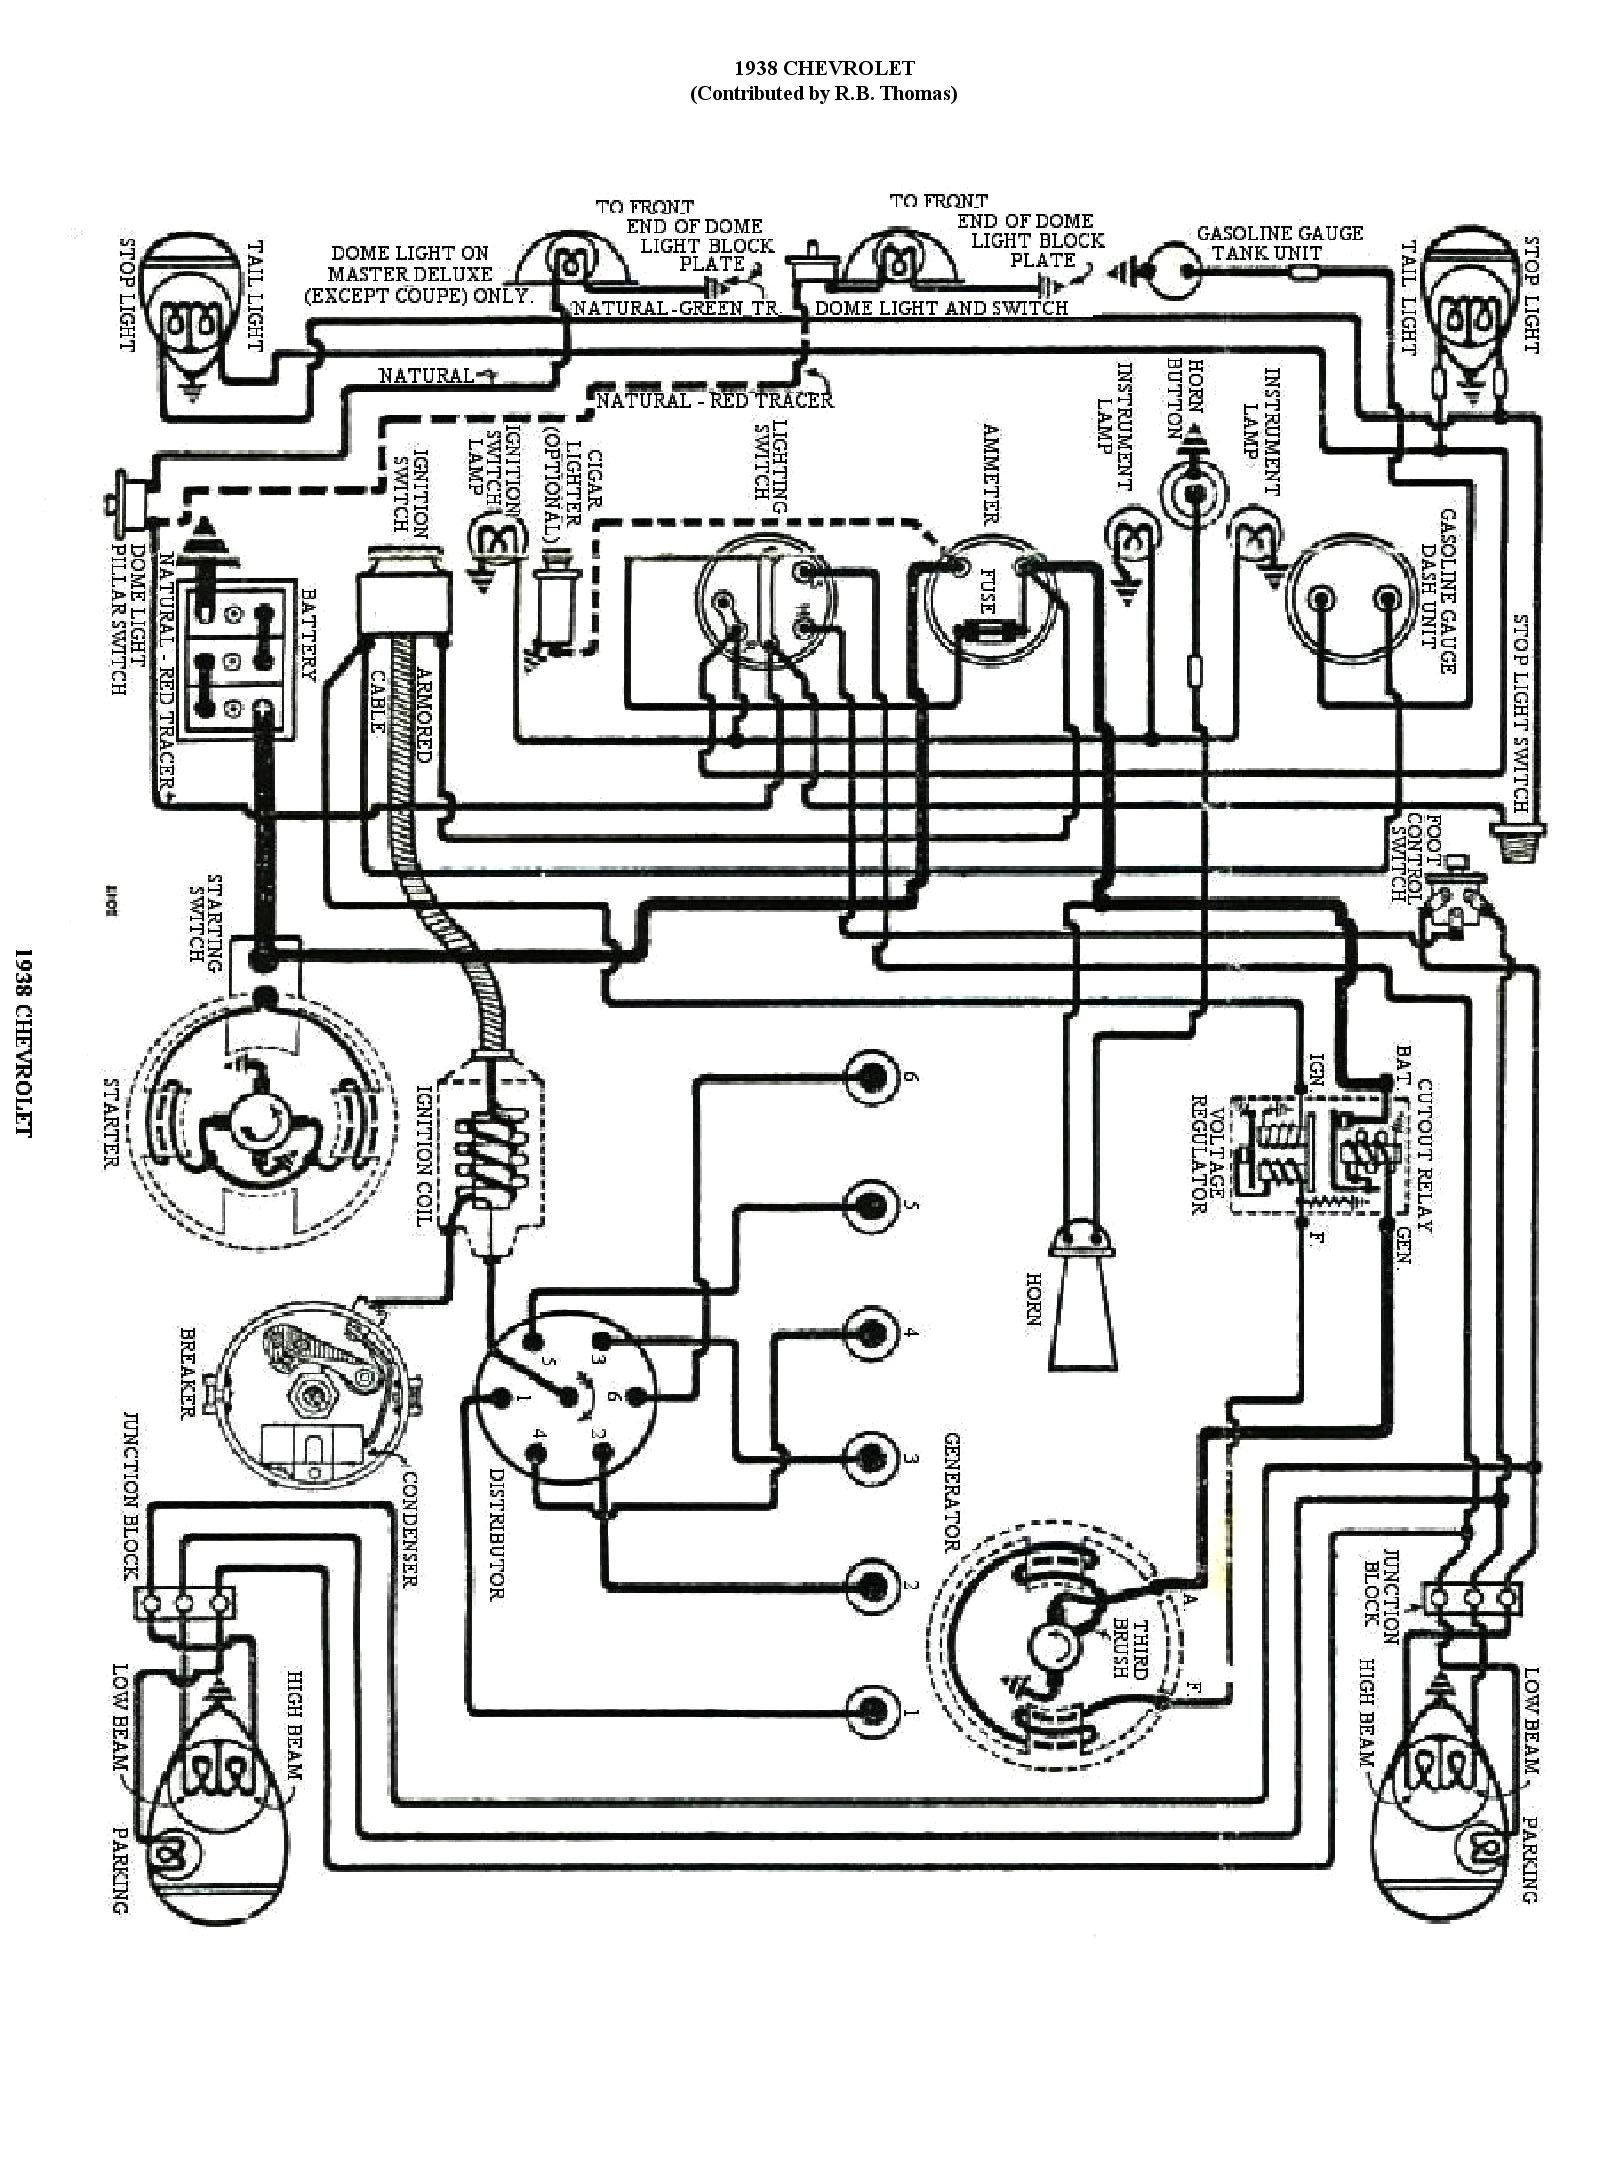 38wiring chevy wiring diagrams 6 Volt Farmall H Wiring Diagram at fashall.co